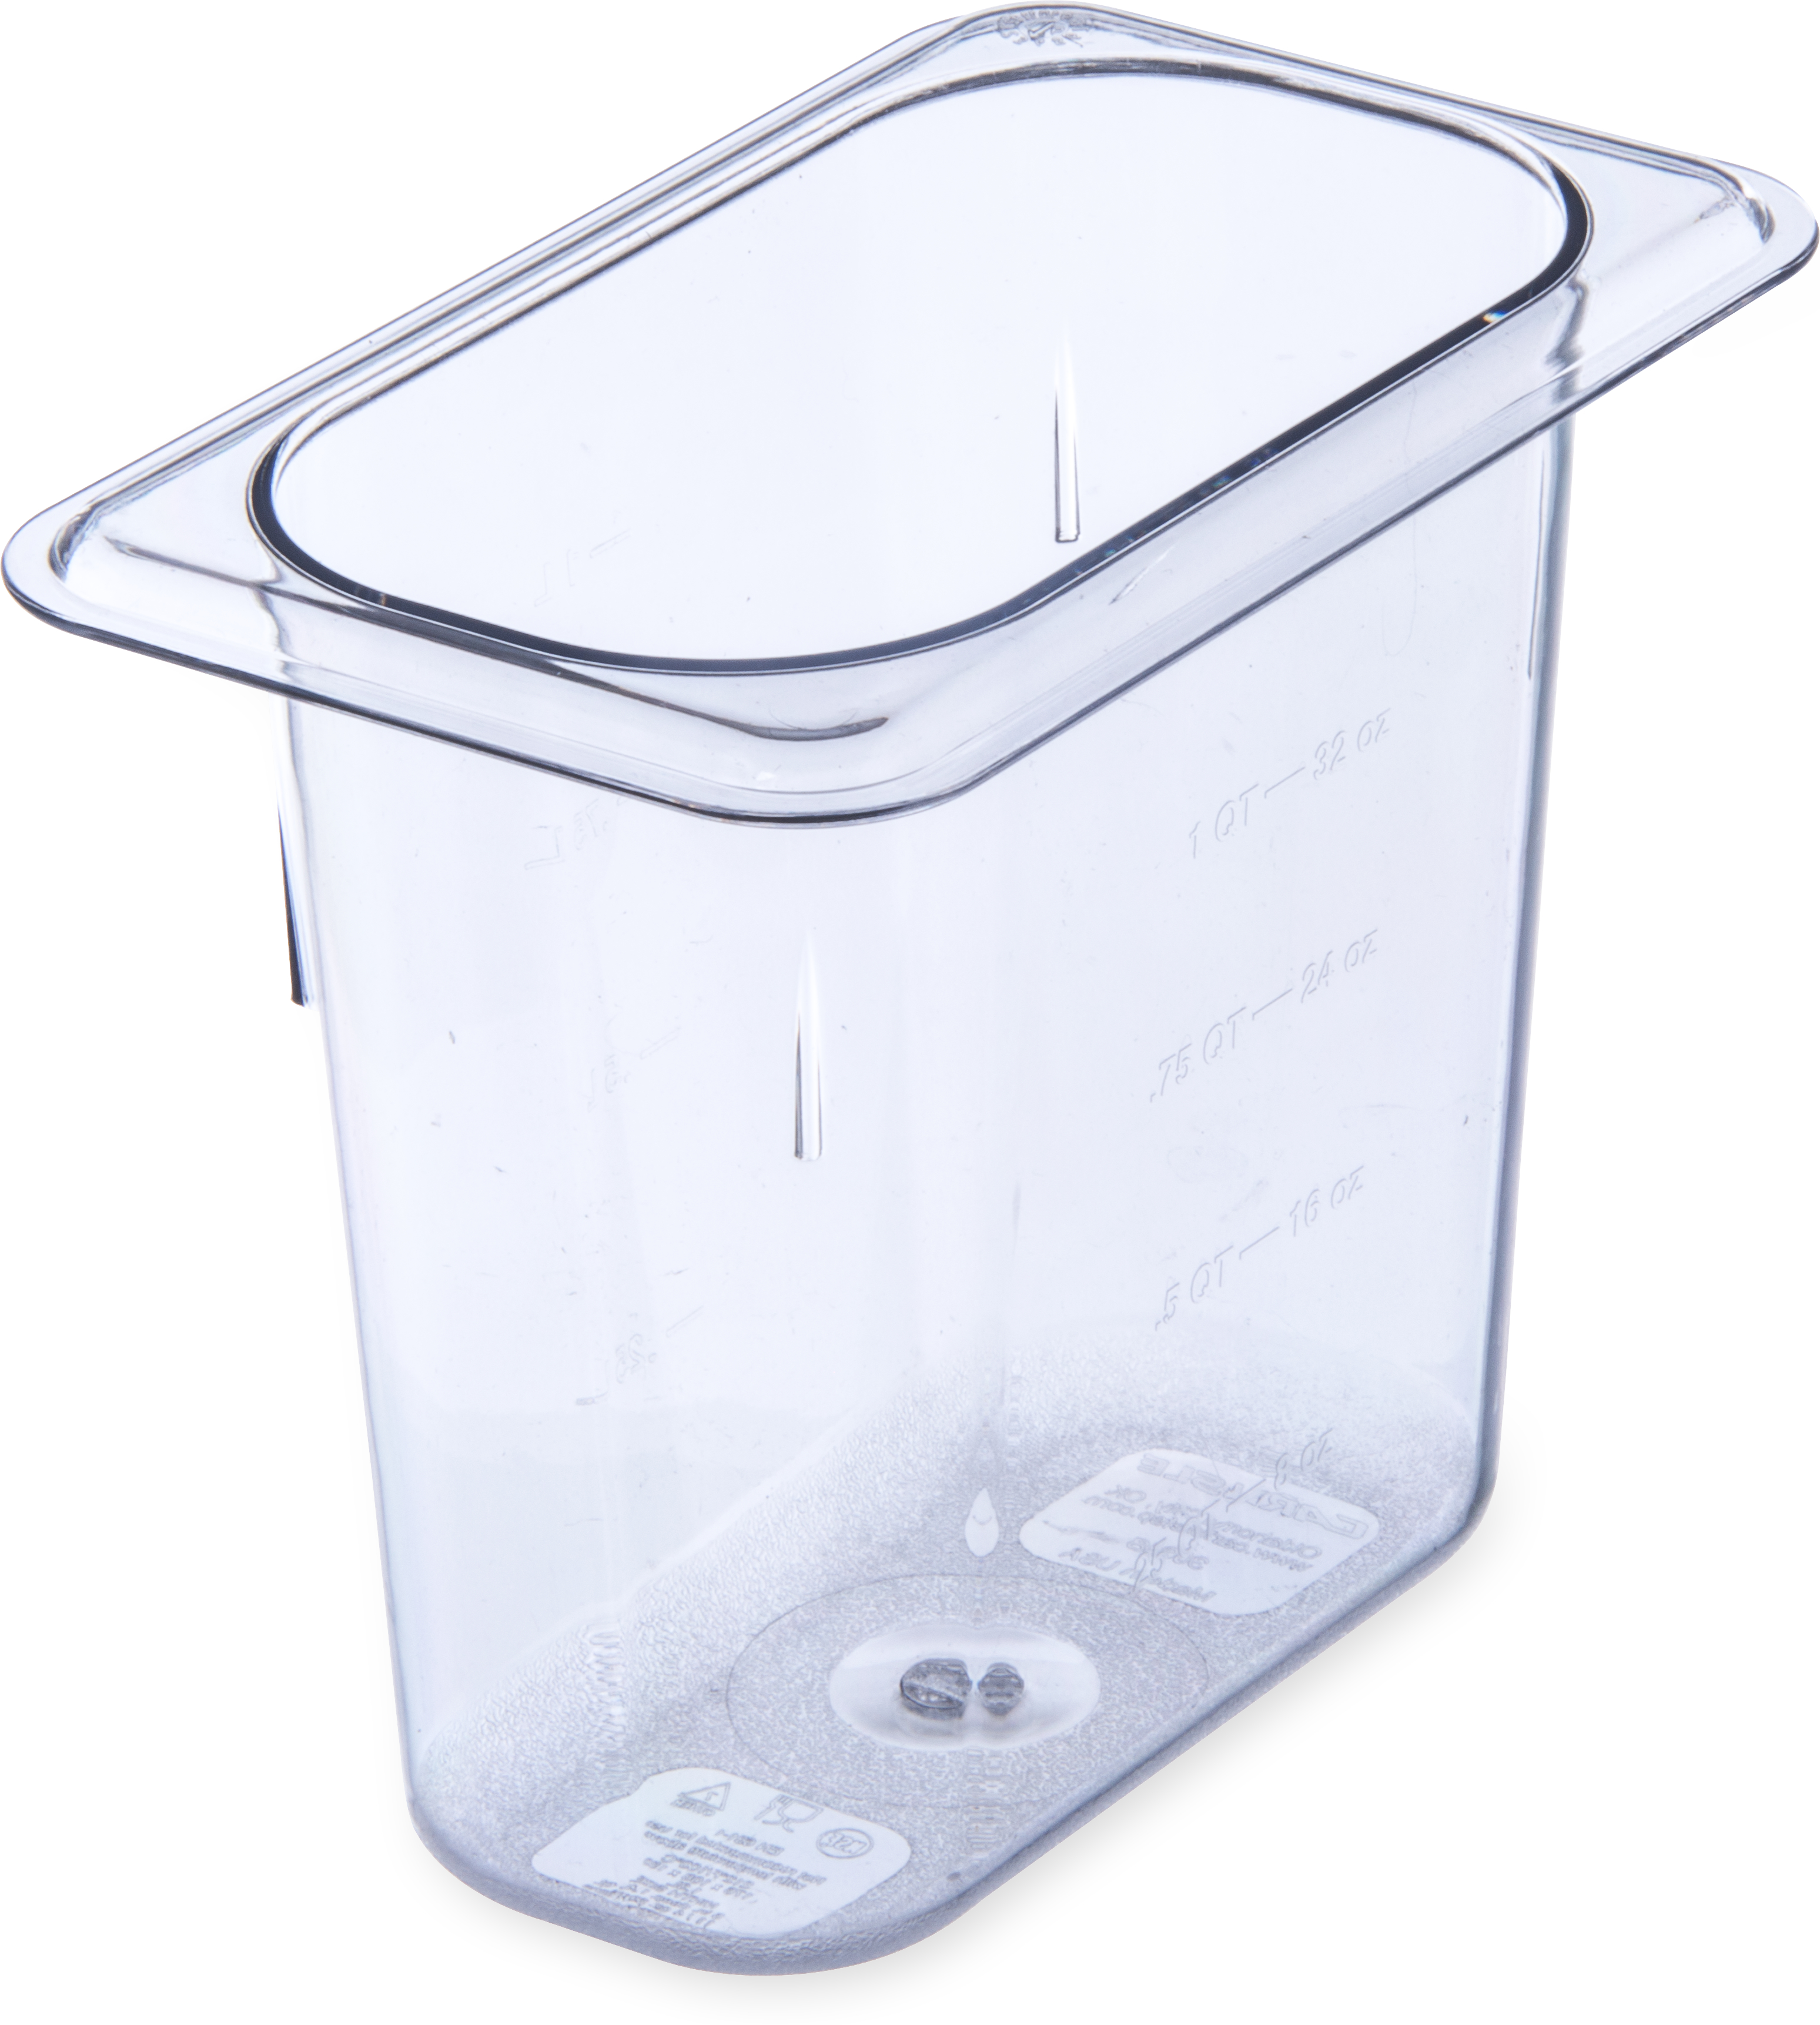 StorPlus Food Pan PC 6 DP 1/9 Size - Clear